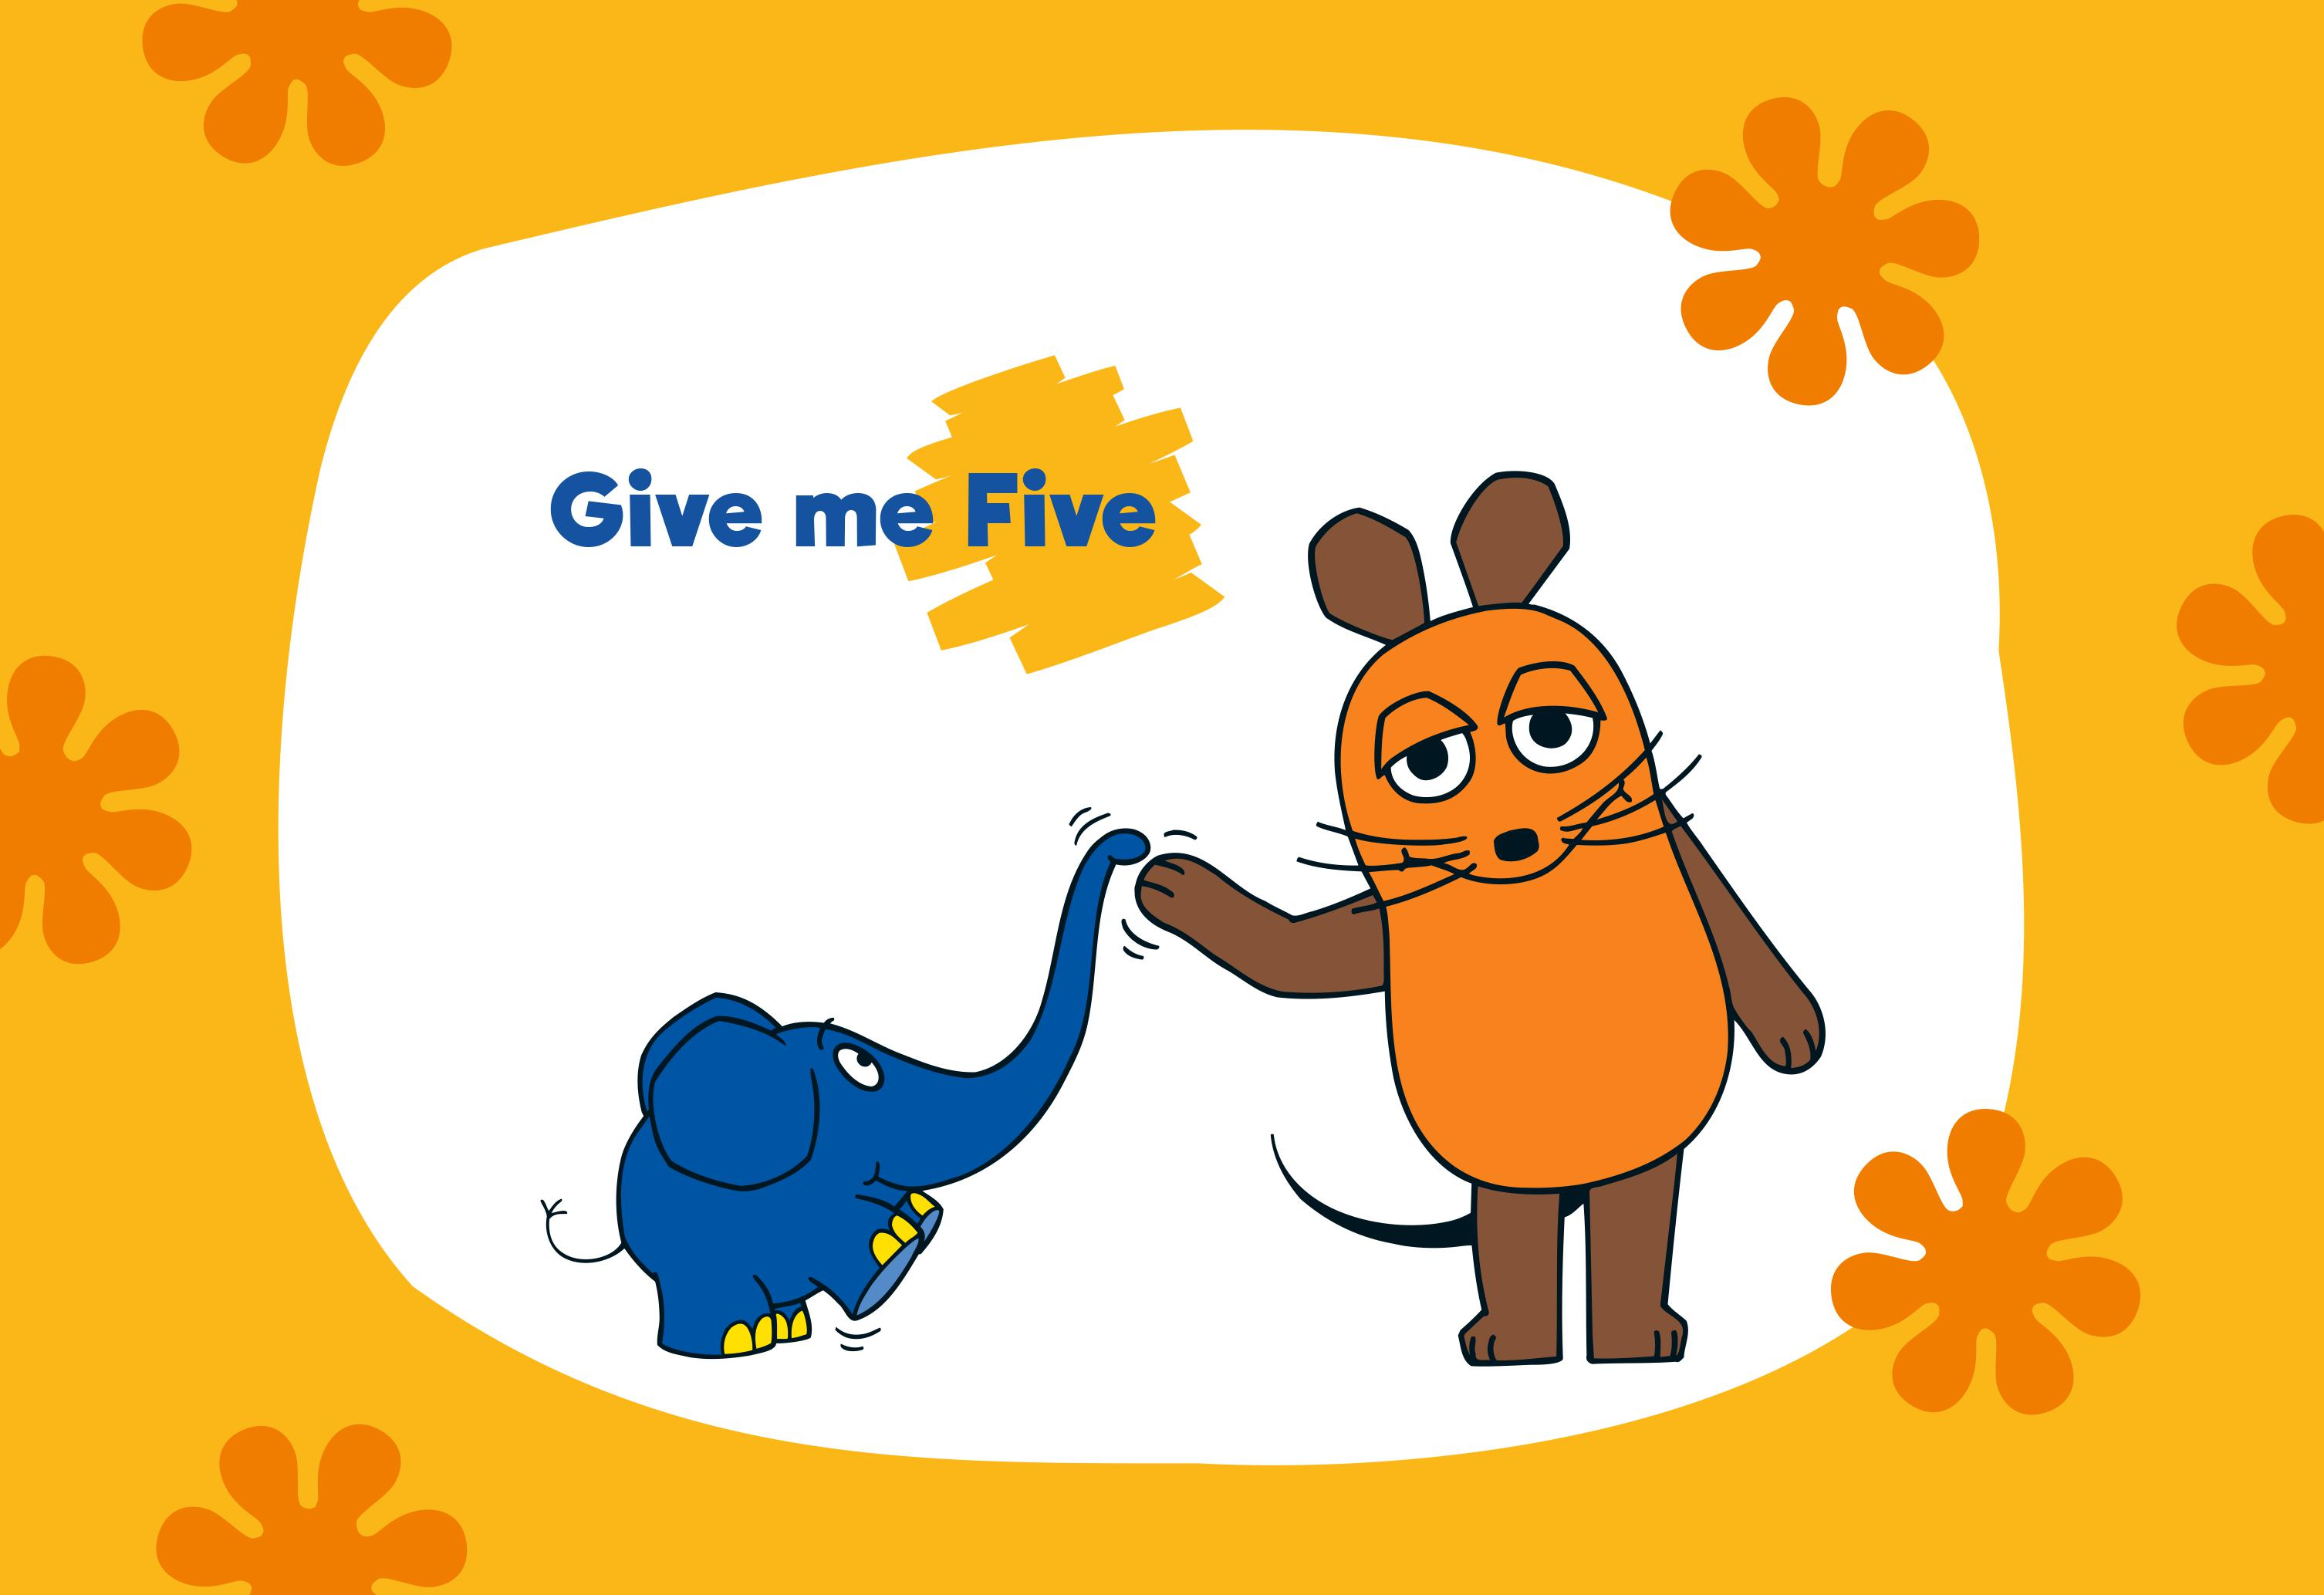 Give-me-Five9wEaDXRNbD2sN